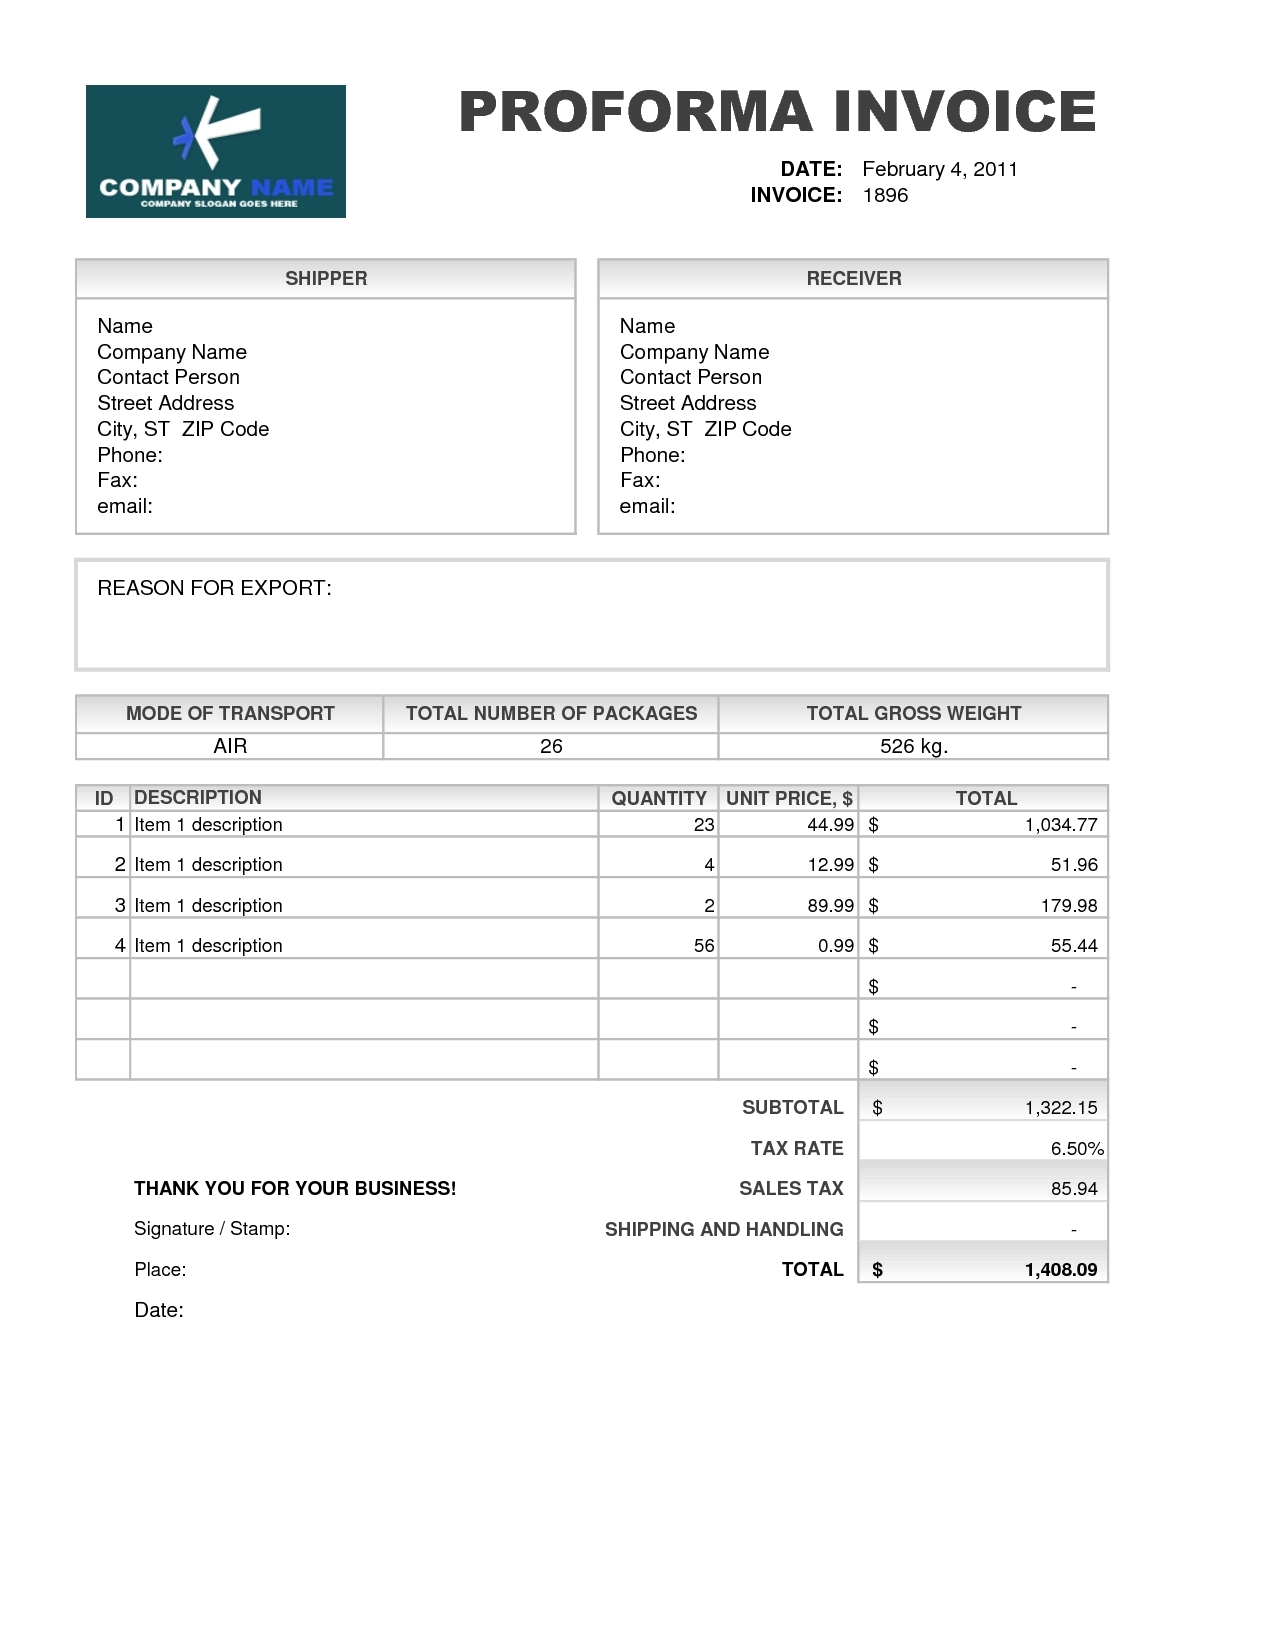 sample of proforma invoice for export invoice template free 2016 samples of proforma invoice